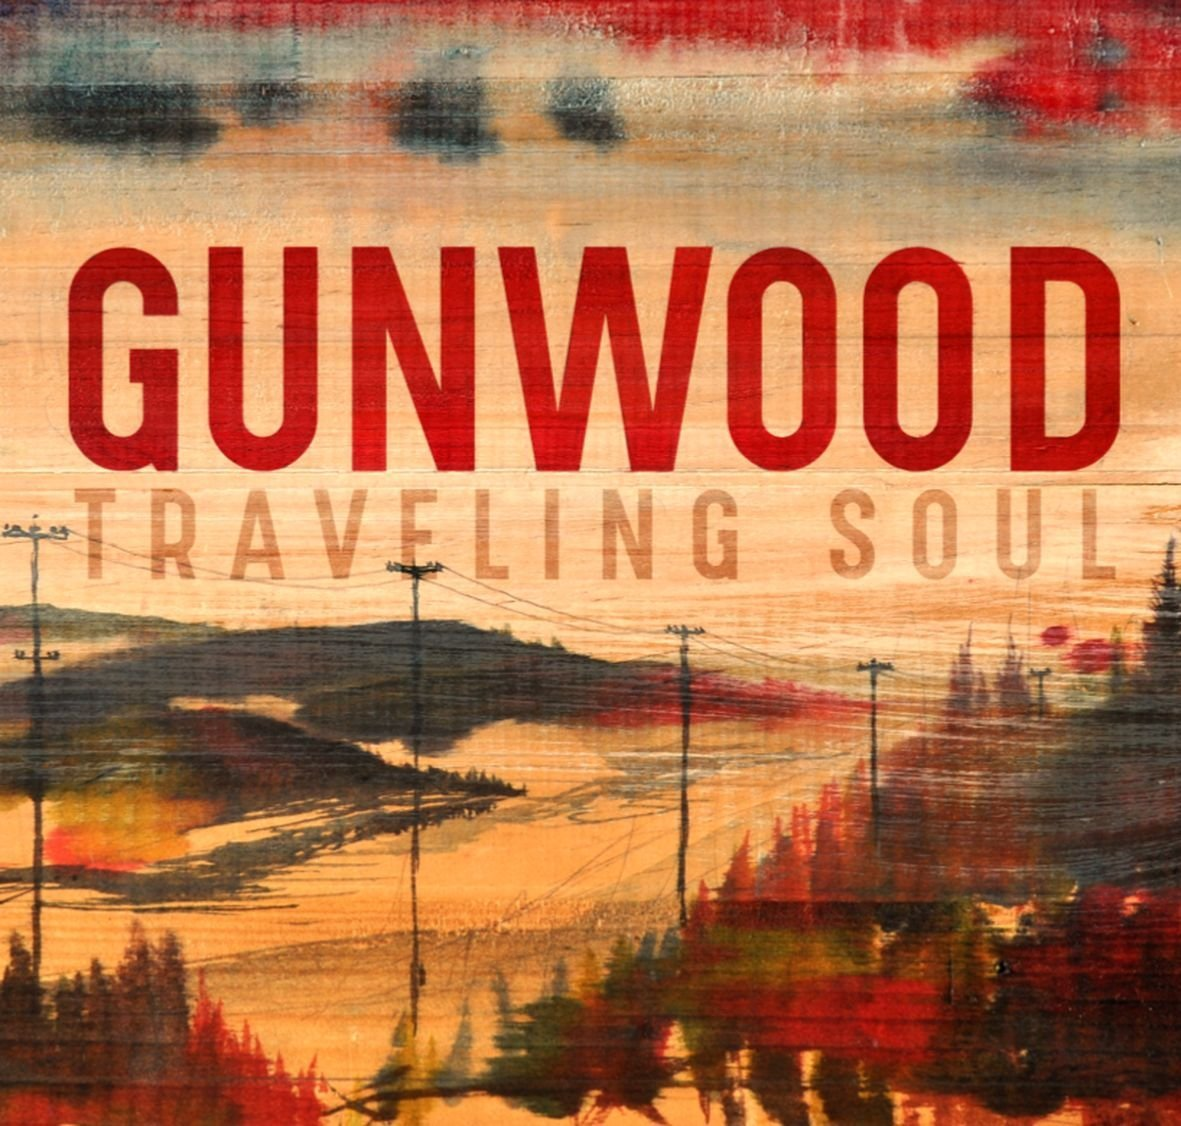 GUNWOOD – Traveling soul